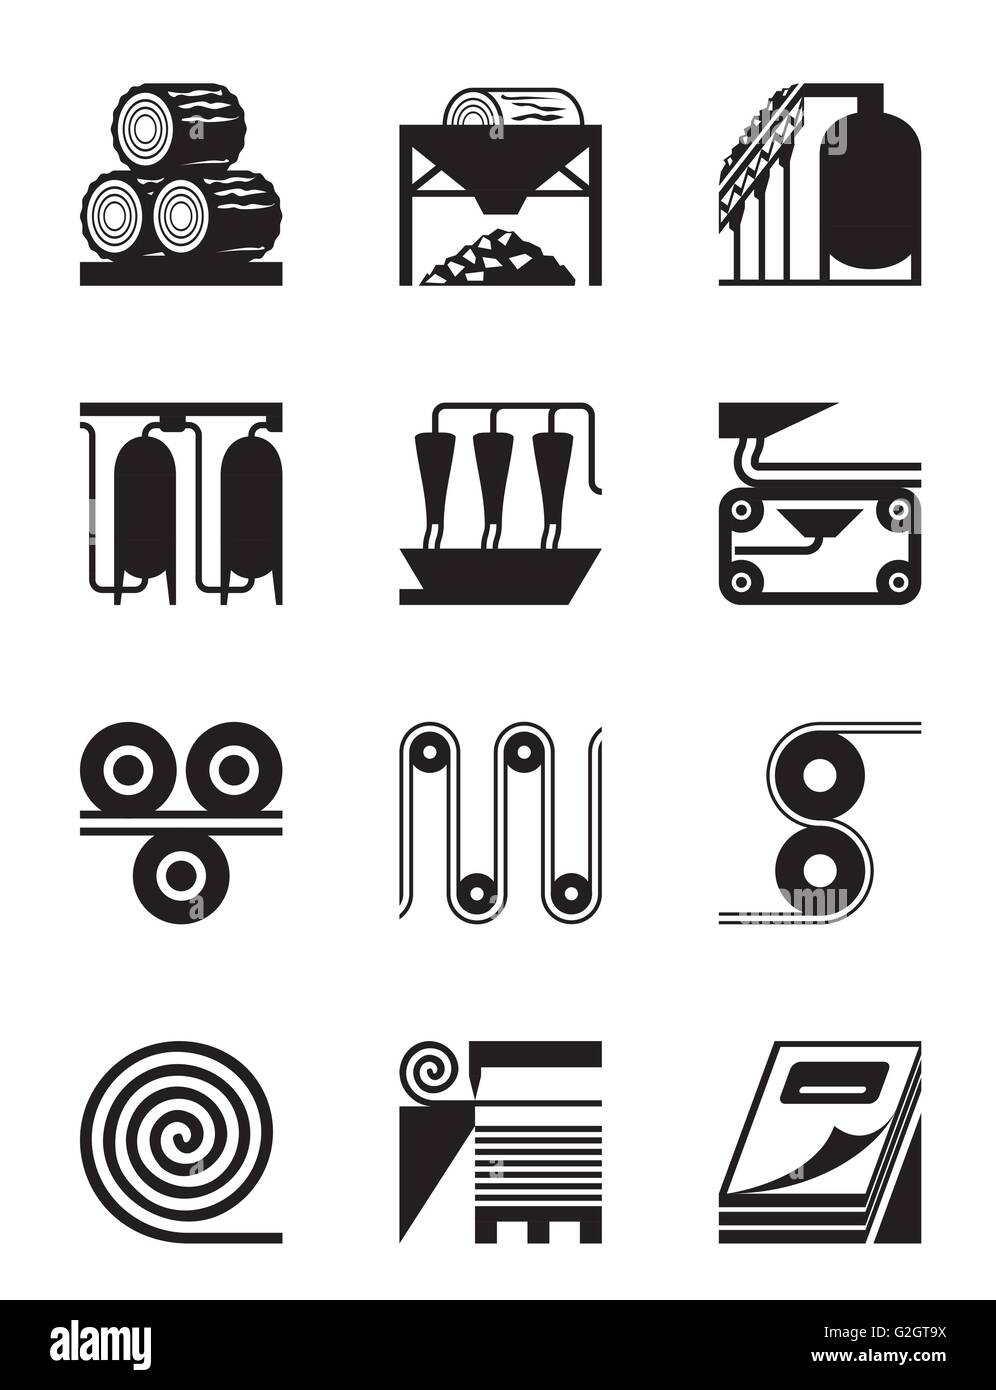 Industrial production of  paper - vector illustration - Stock Image